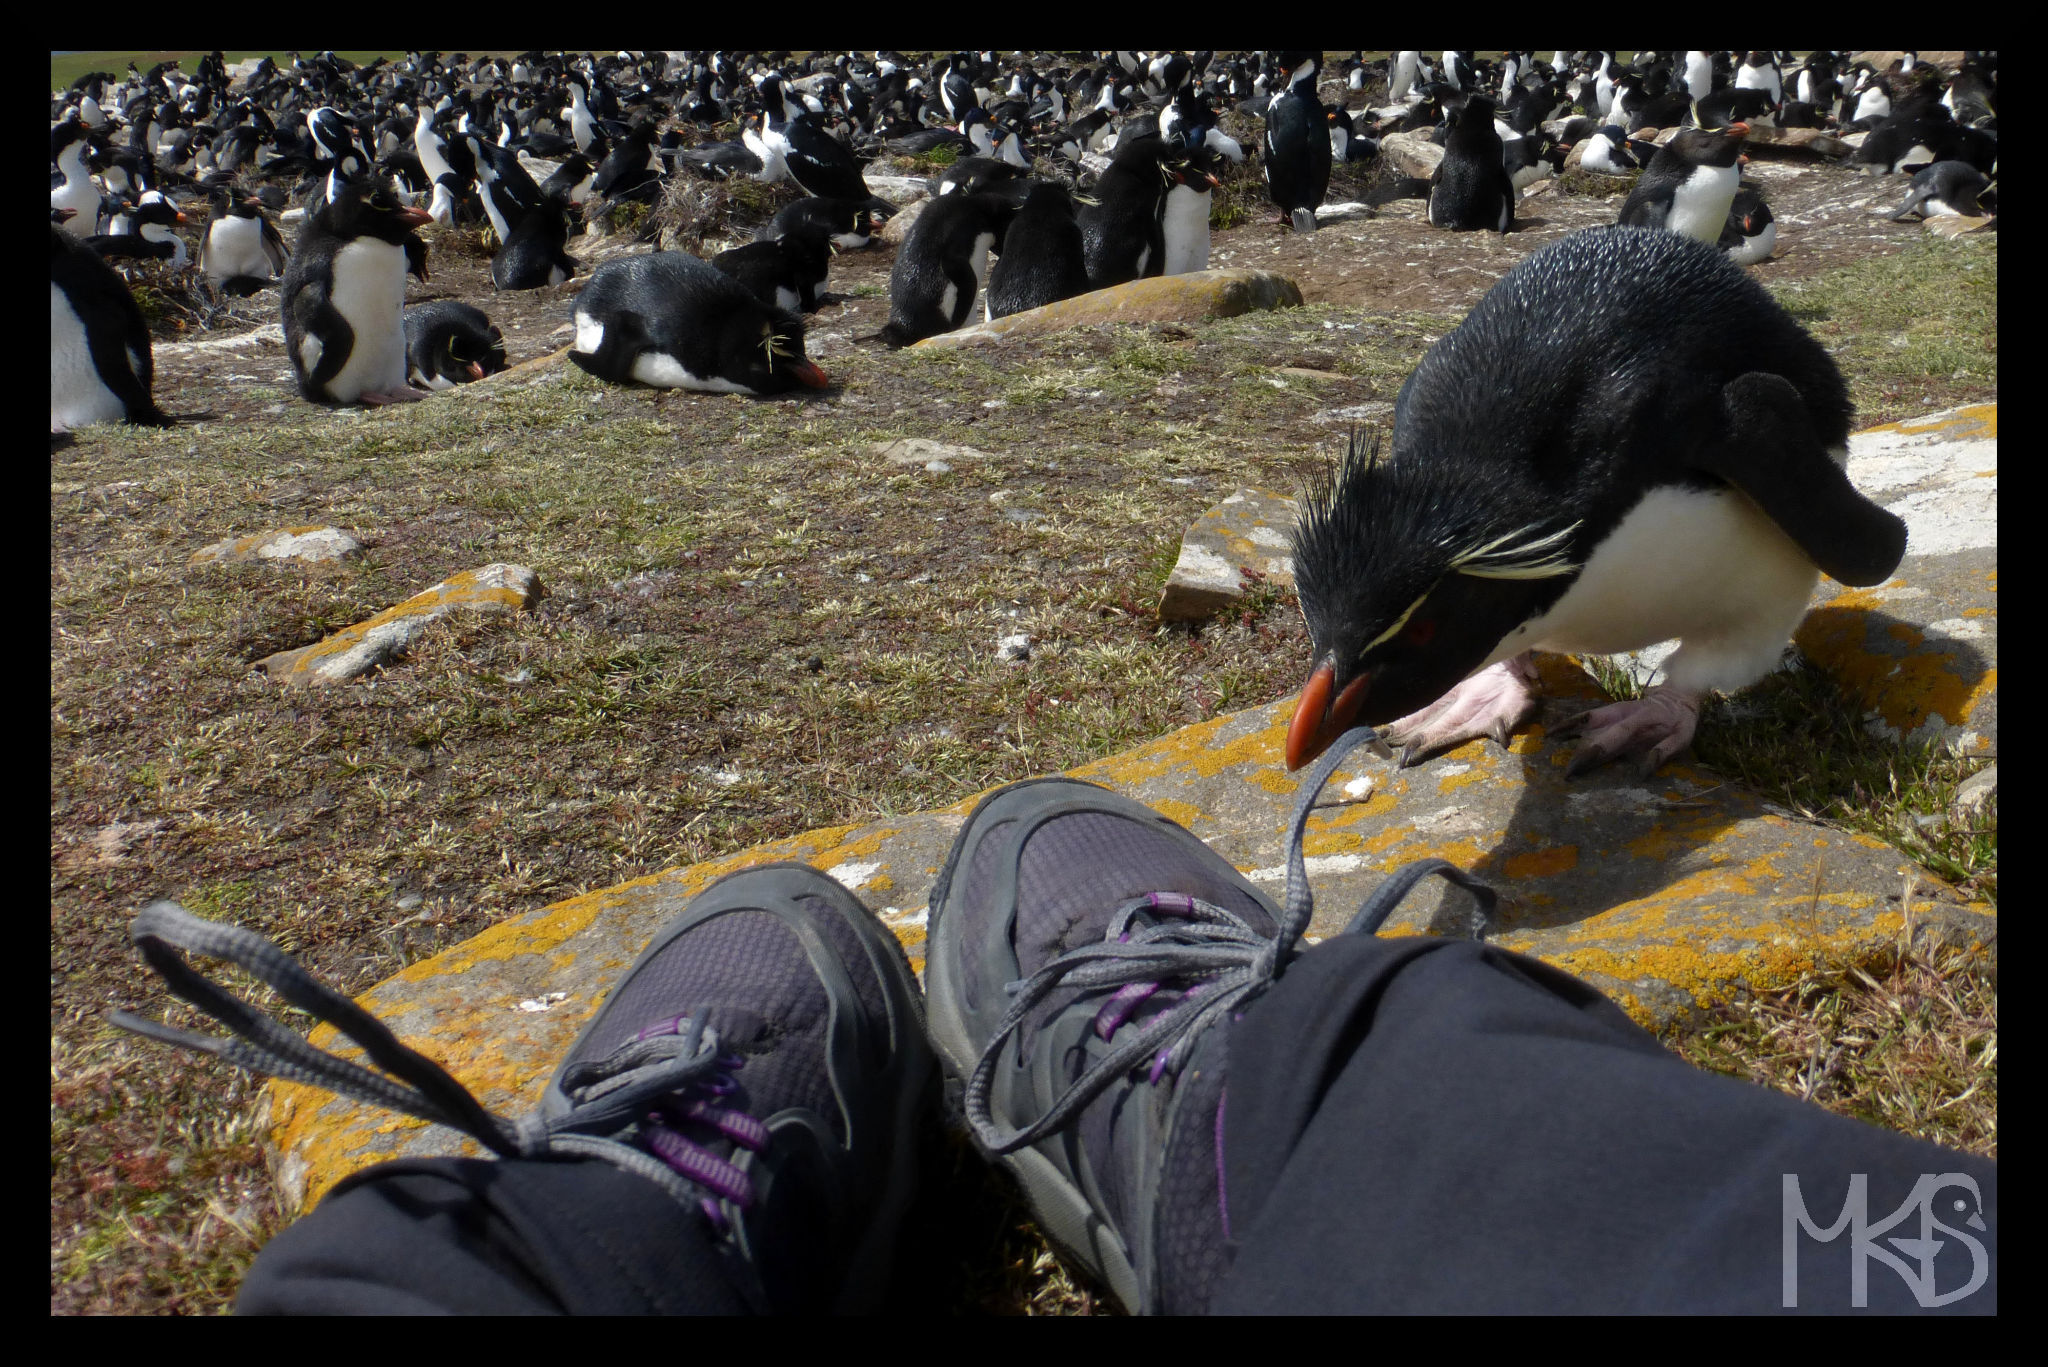 The rockhopper and my shoes